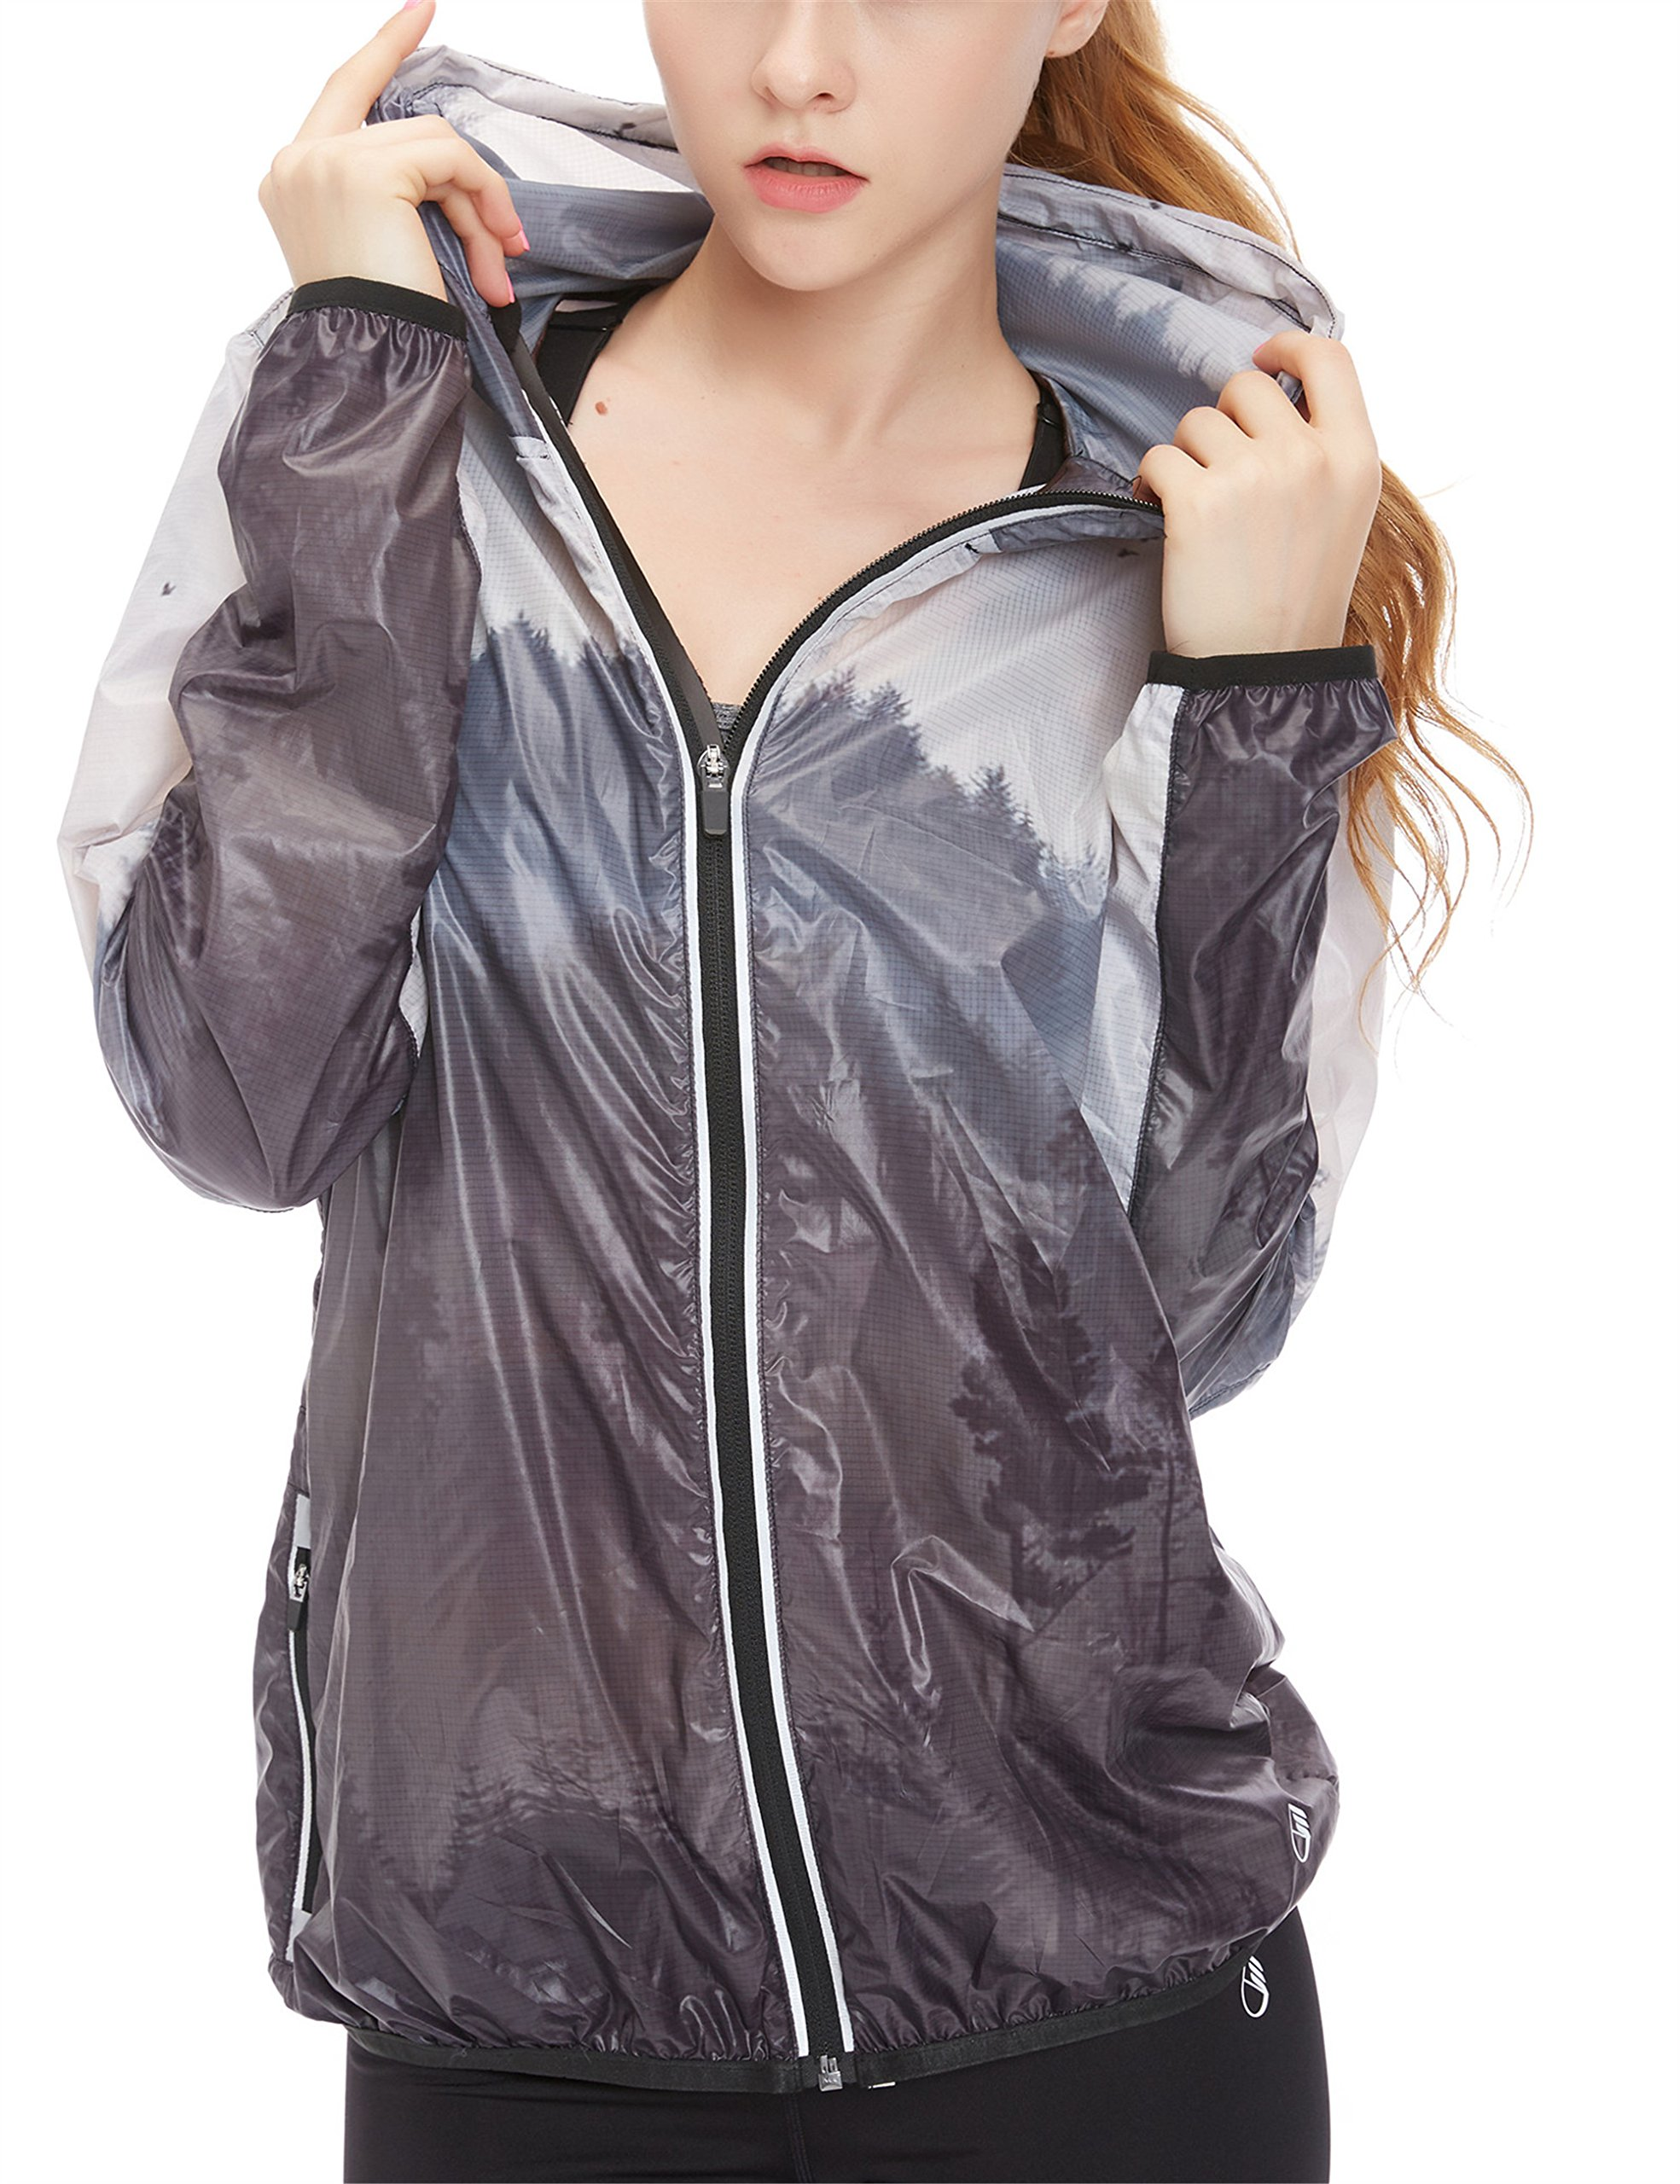 icyzone Workout Jackets for Women - Athletic Running Yoga Exercise Windbreaker Track Jacket(M, Dark Forest)